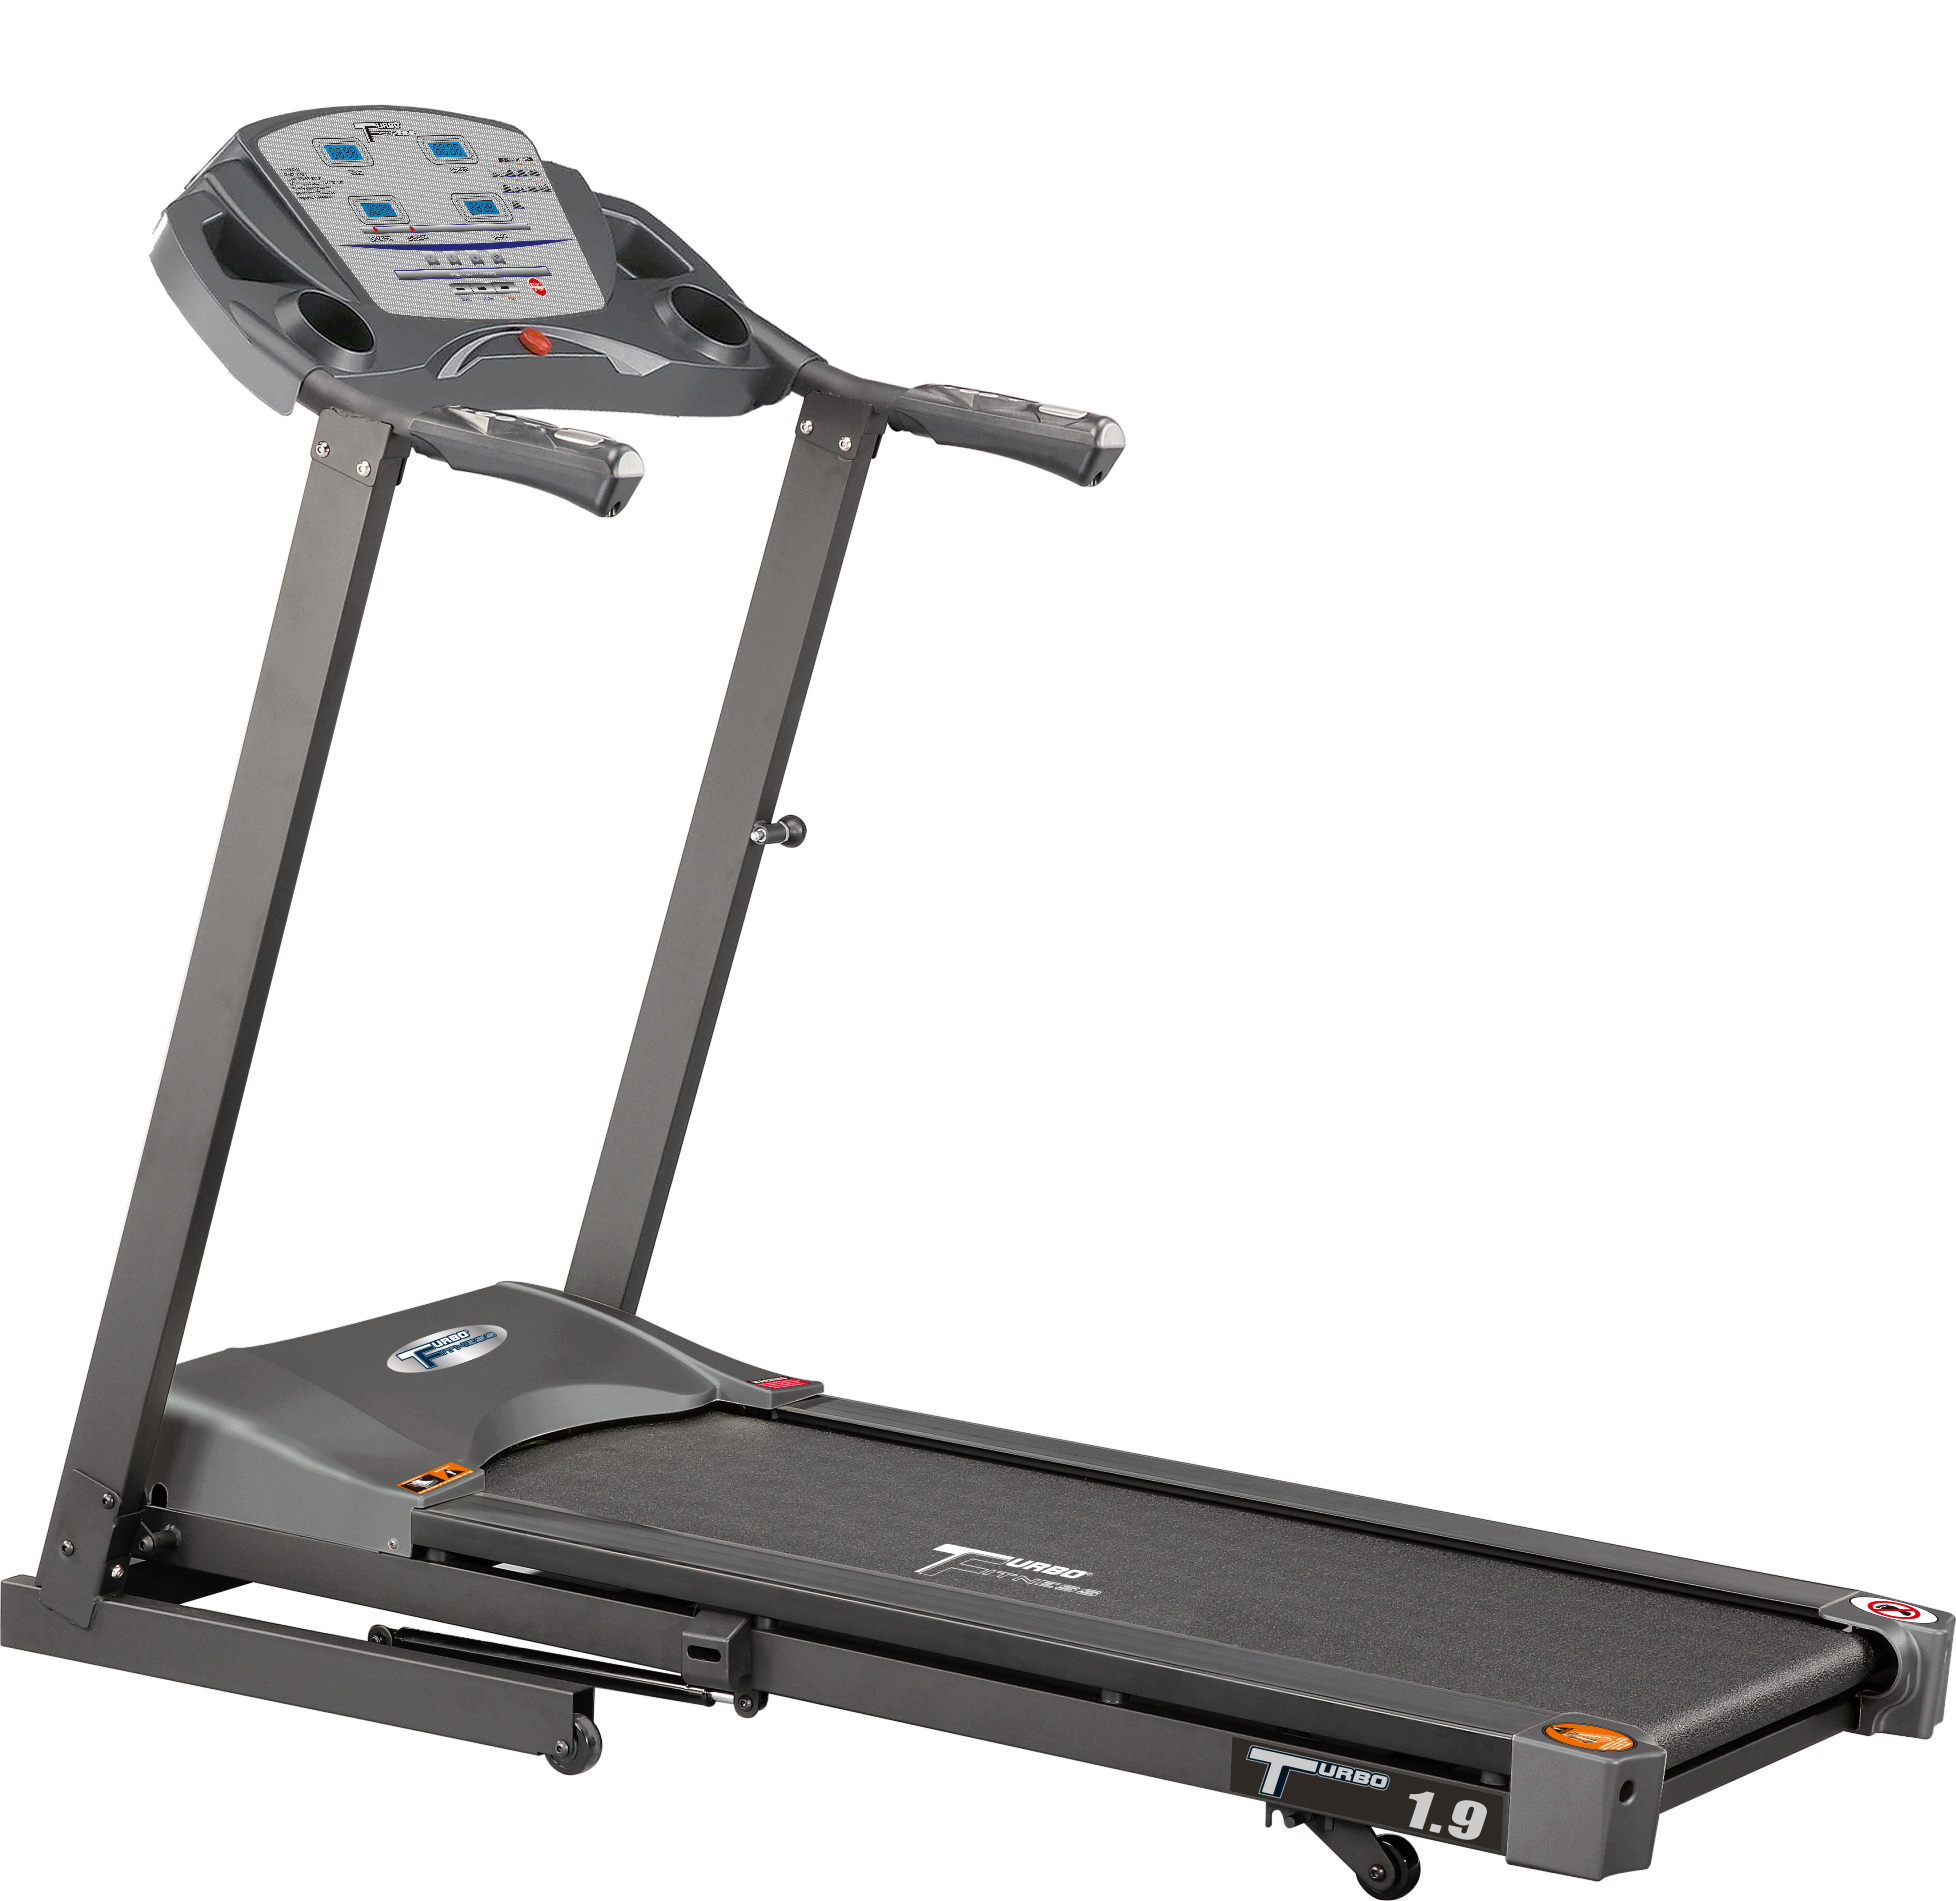 Turbo Fitness T1.9 treadmill